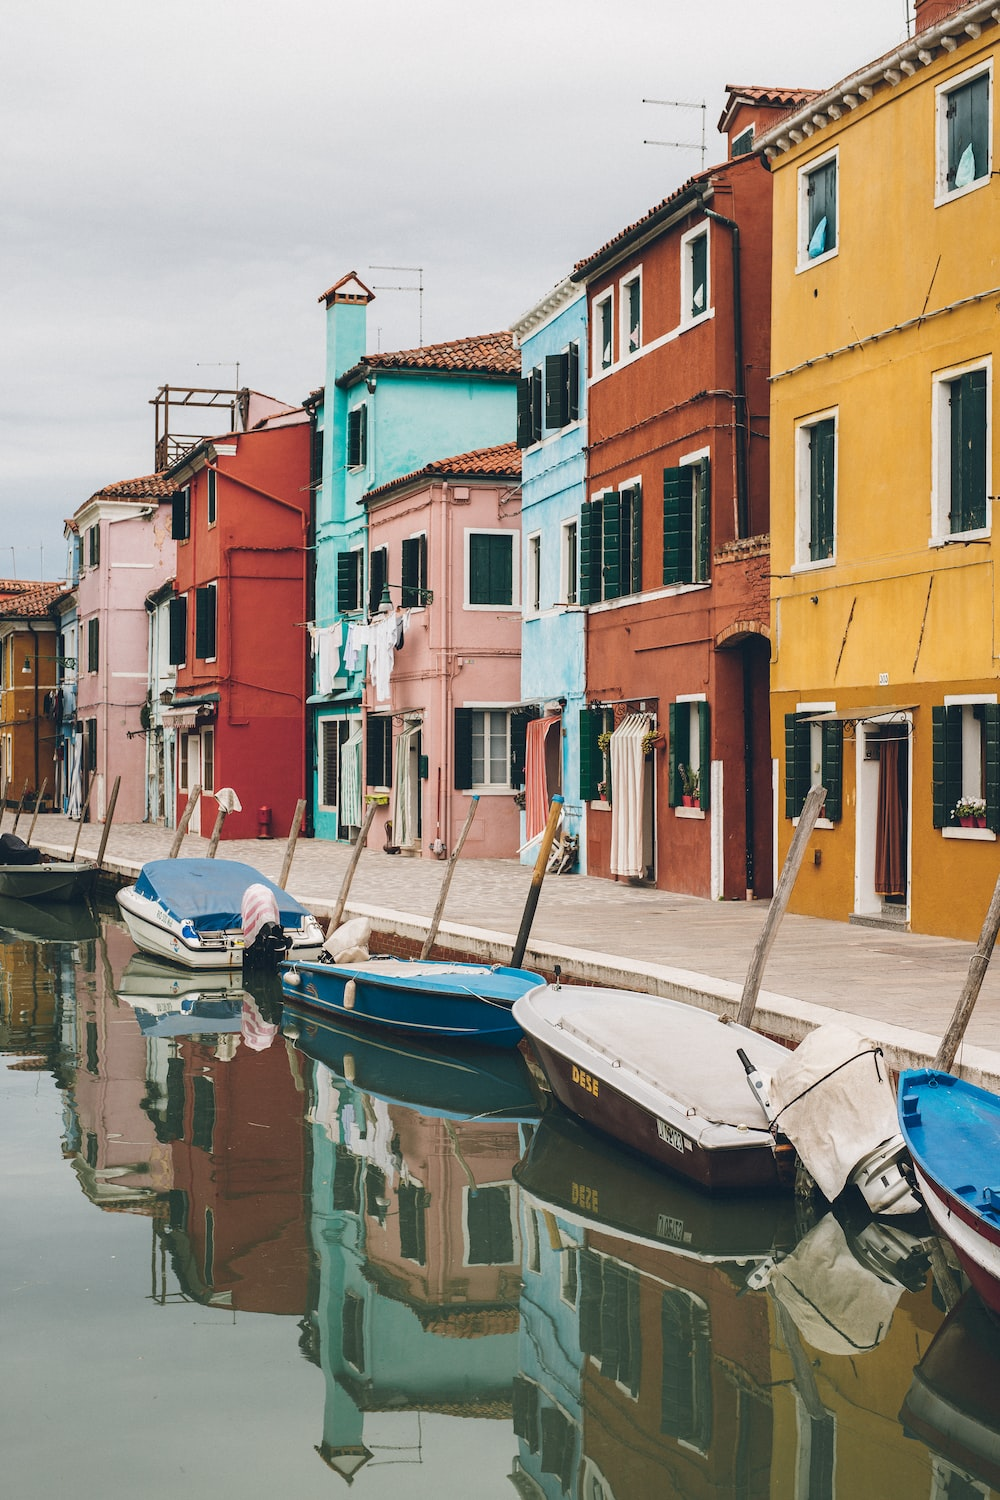 boats on calm body of water beside buildings